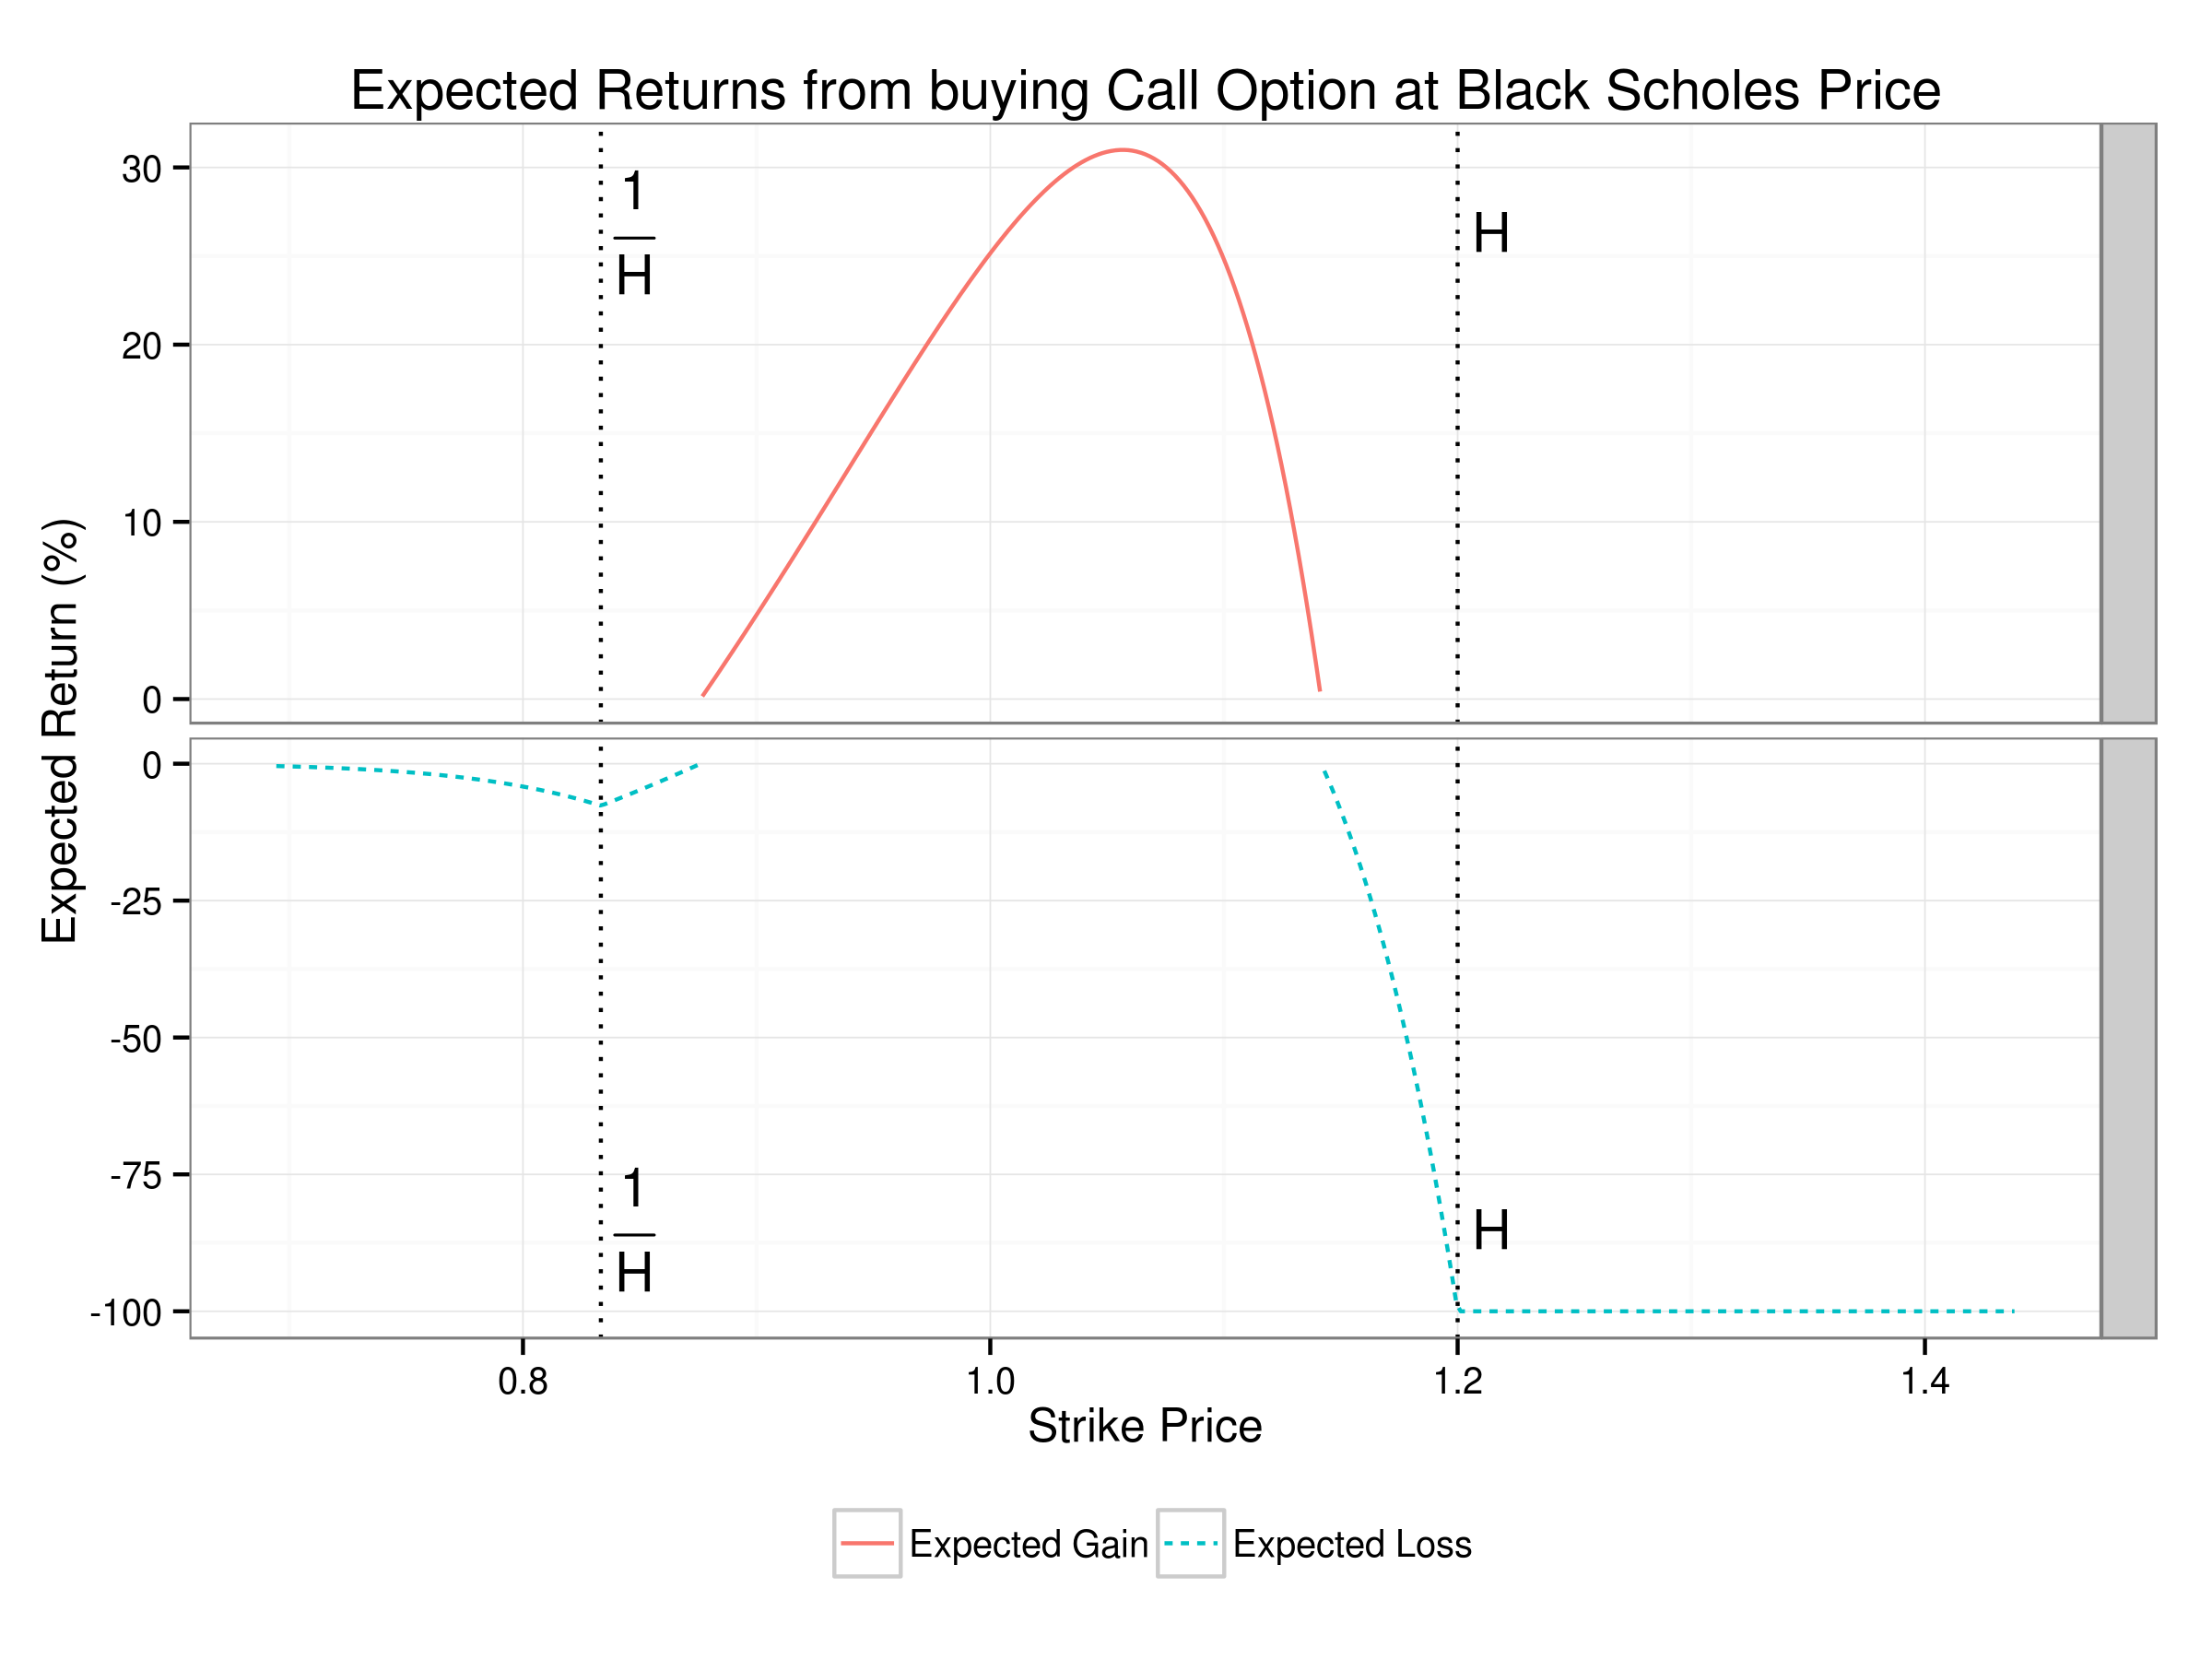 Plot of expected returns from buying call at Black Scholes Price